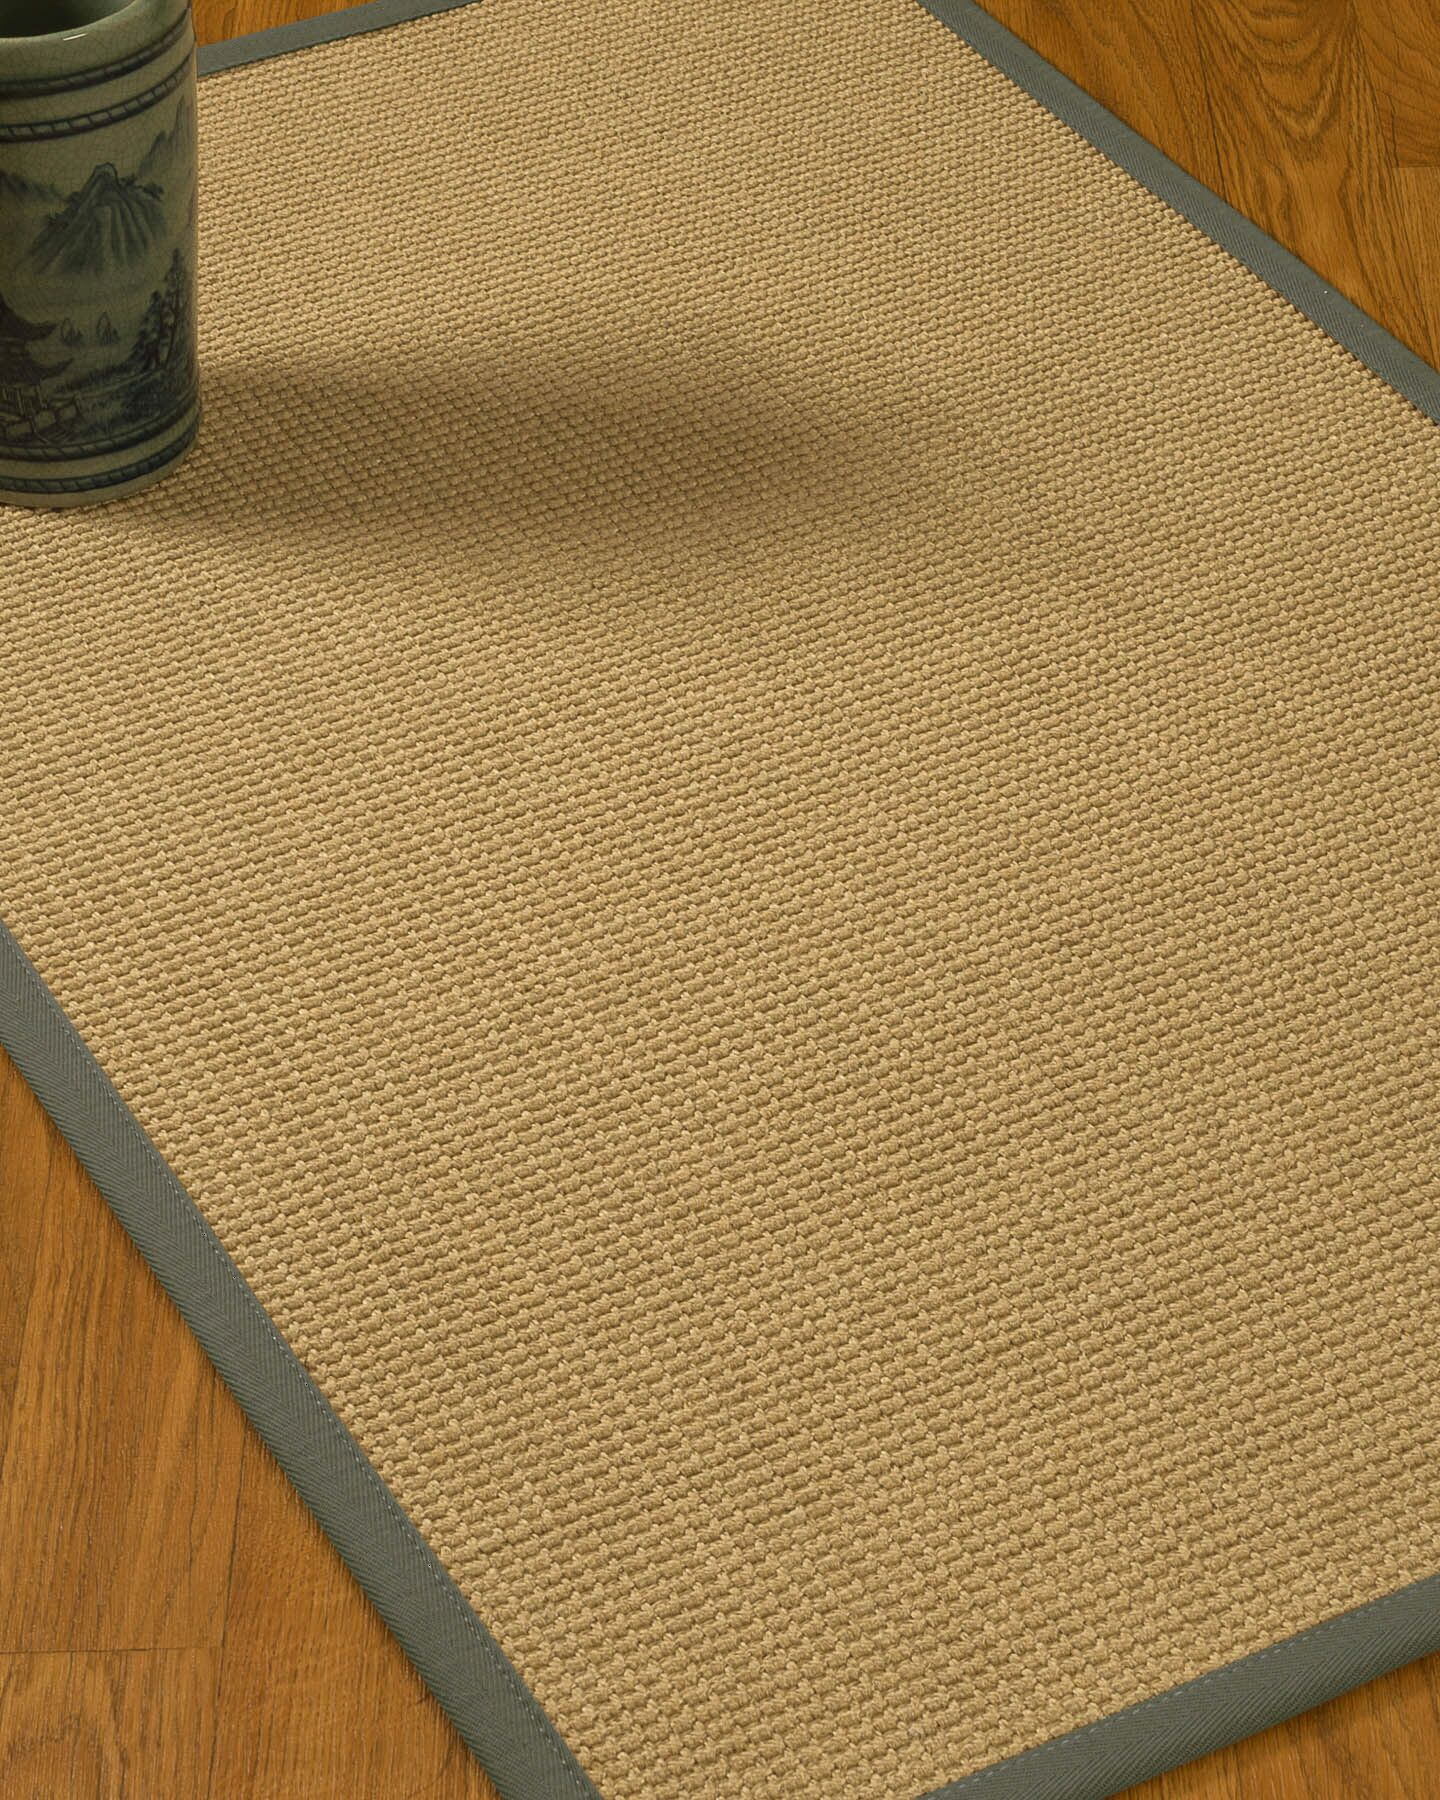 Jacobs Border Hand-Woven Beige/Stone Area Rug Rug Size: Rectangle 12' x 15', Rug Pad Included: Yes